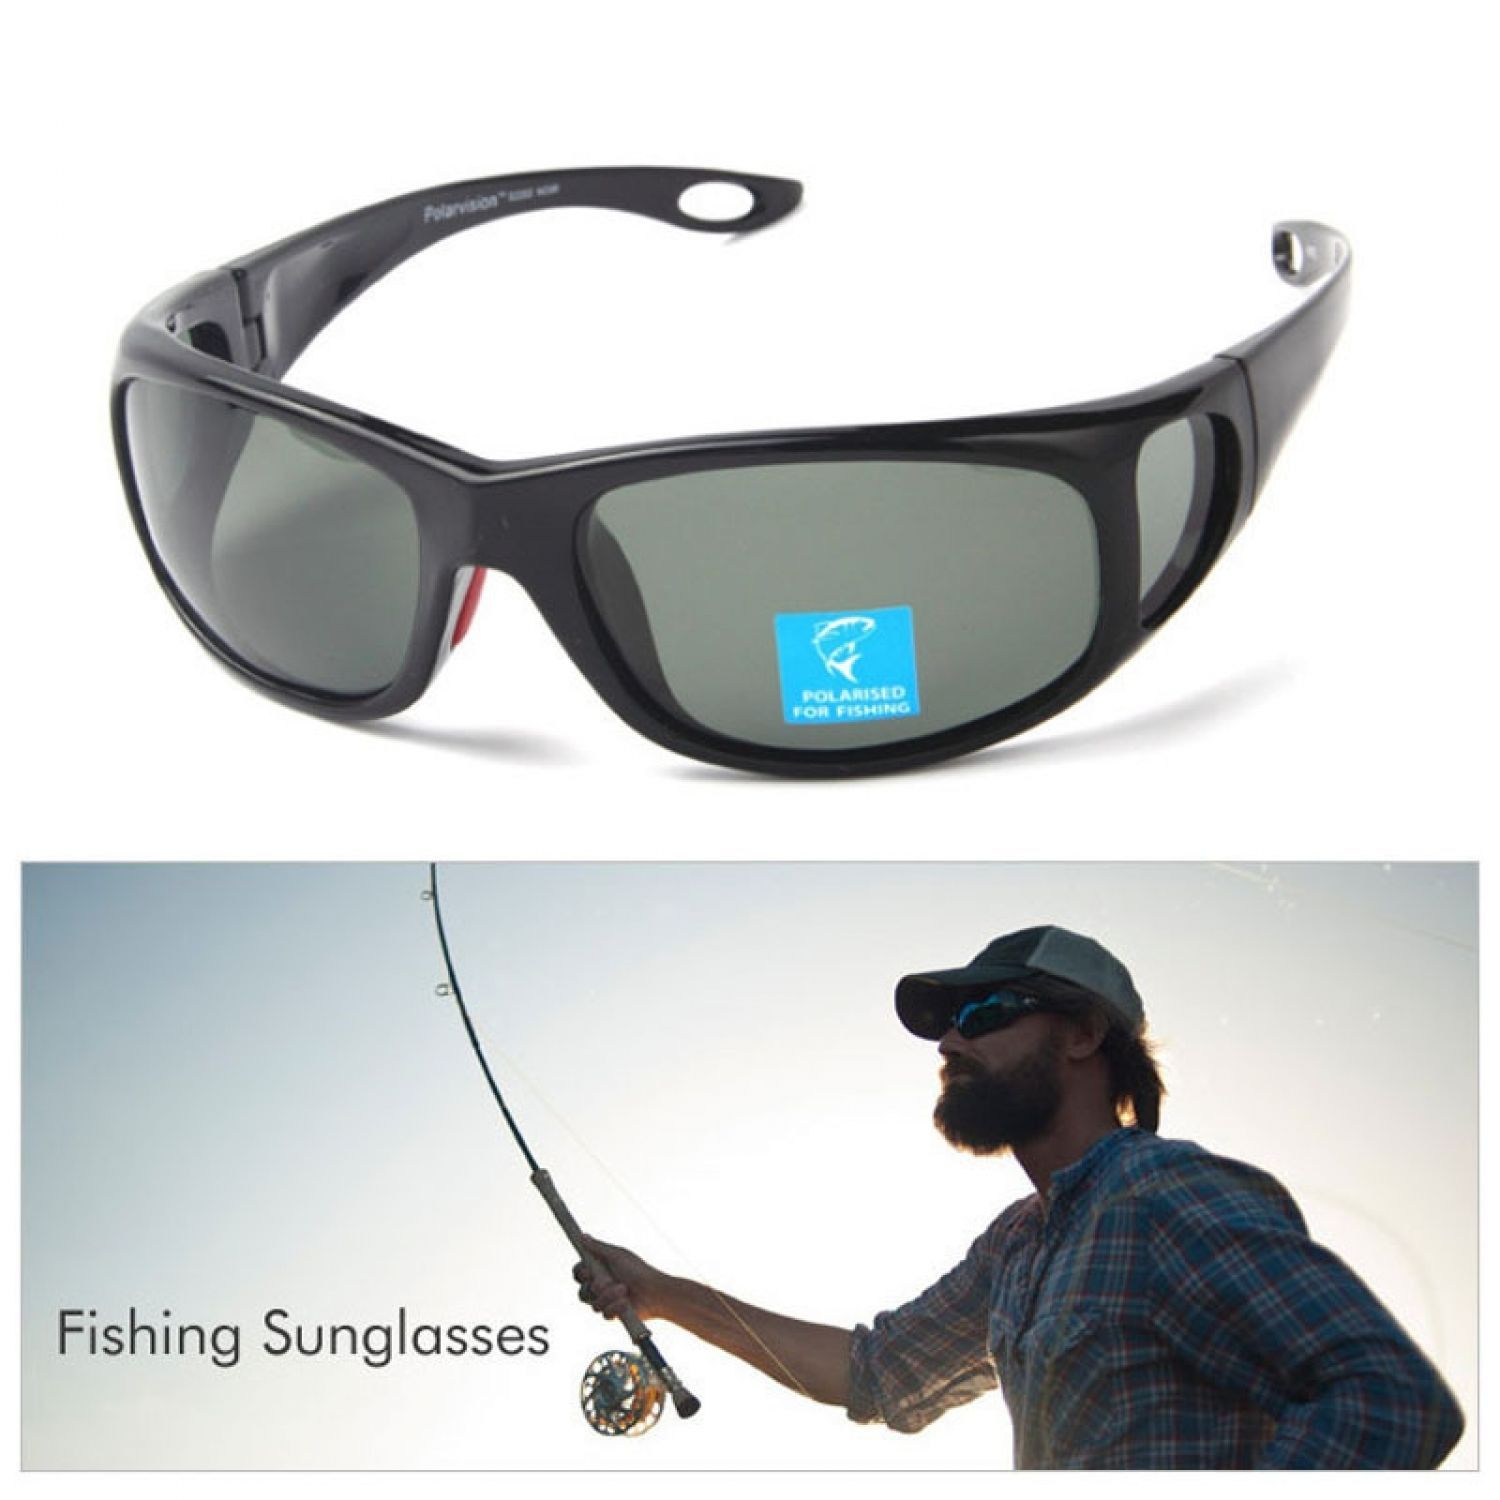 9b98d98e6db9 Men Sun Glasses Polarized Lens Brand Designer Polaroid Fish Glasses Plus  Case. Find ...